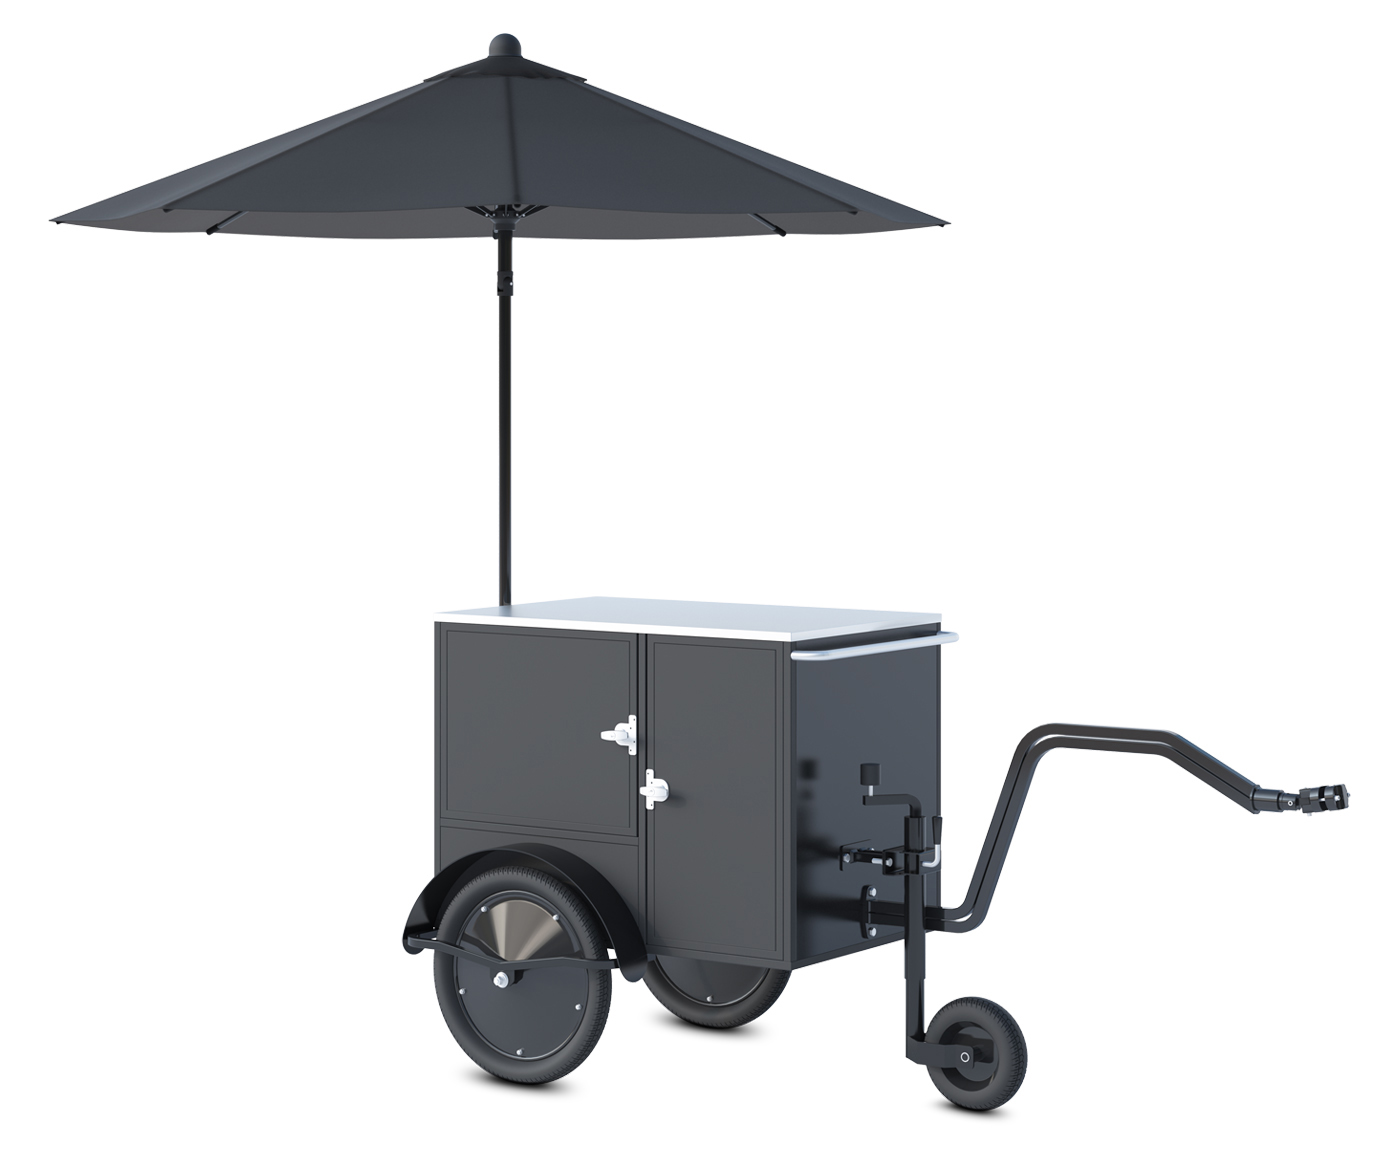 Small vending cart manufactured by Bizz On Wheels